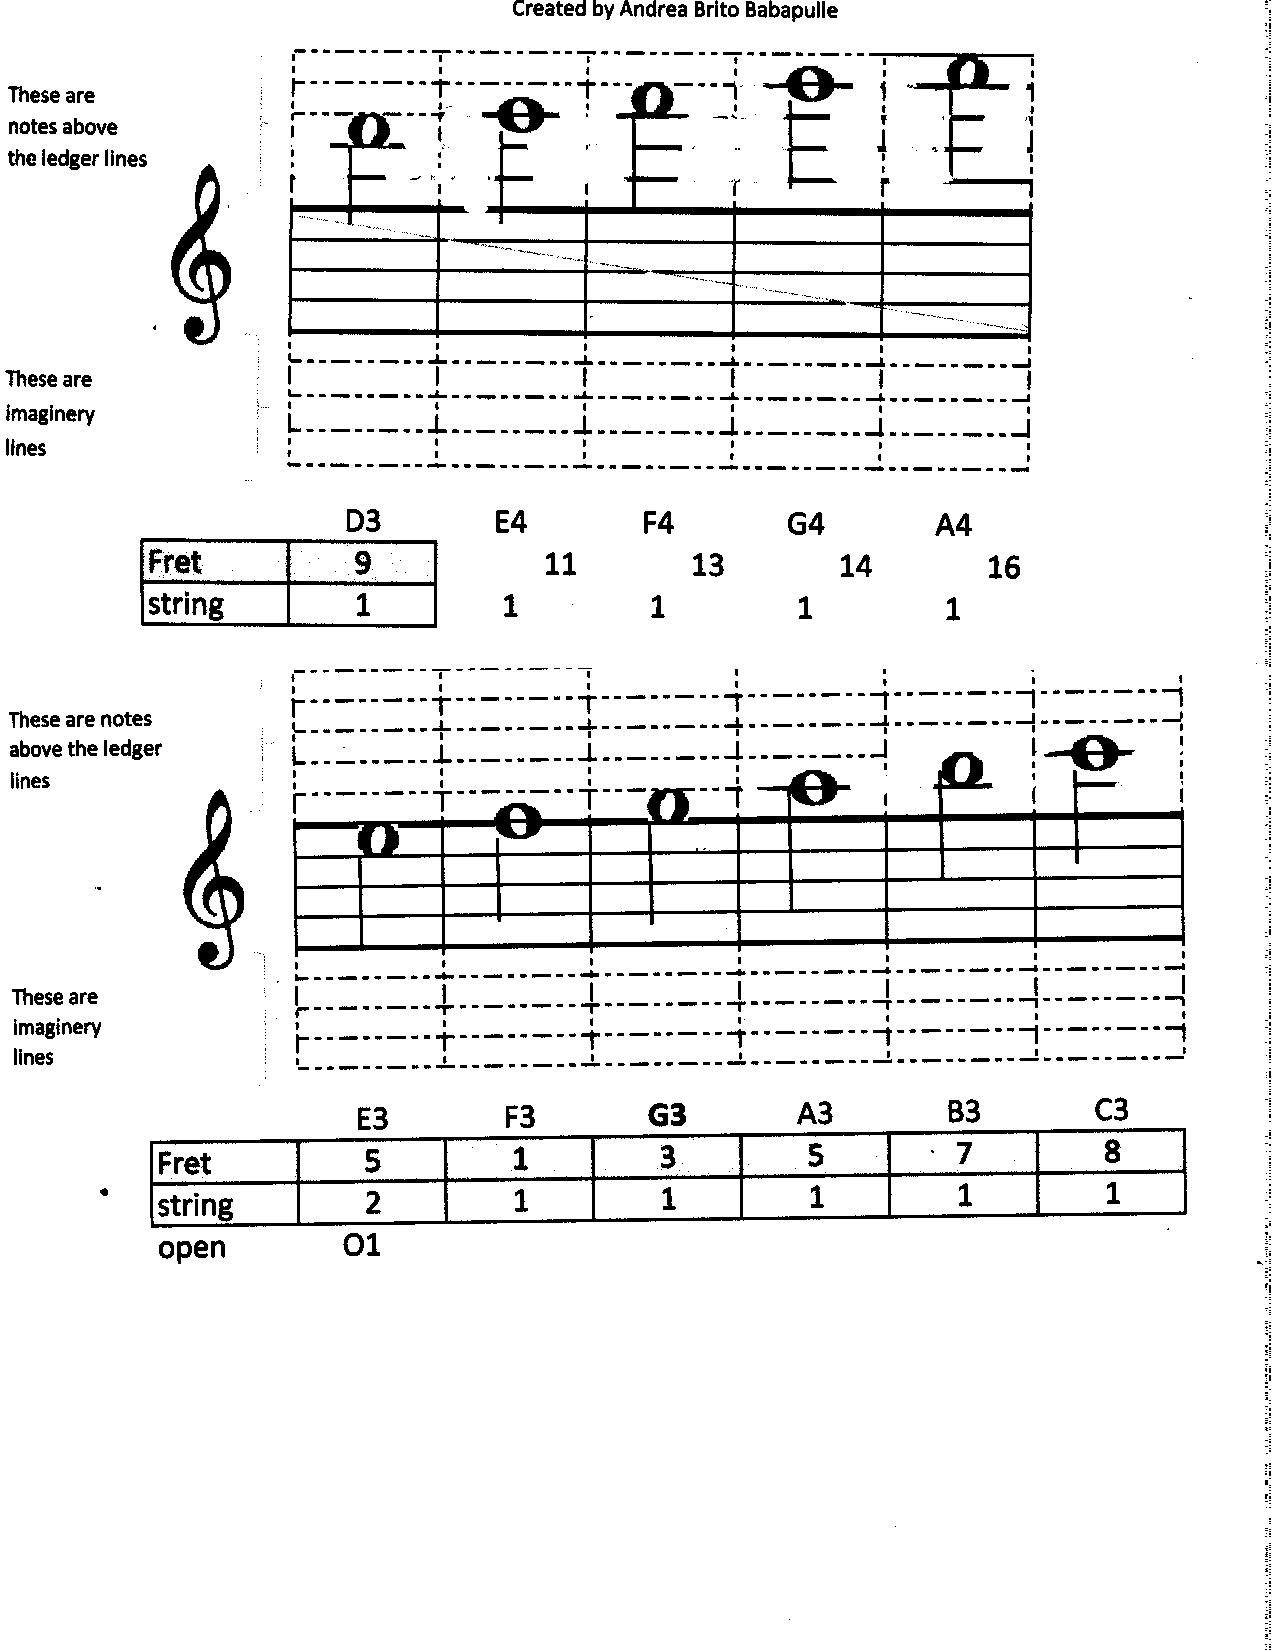 File Notes Above The Ledger Lines And Piano Position 001